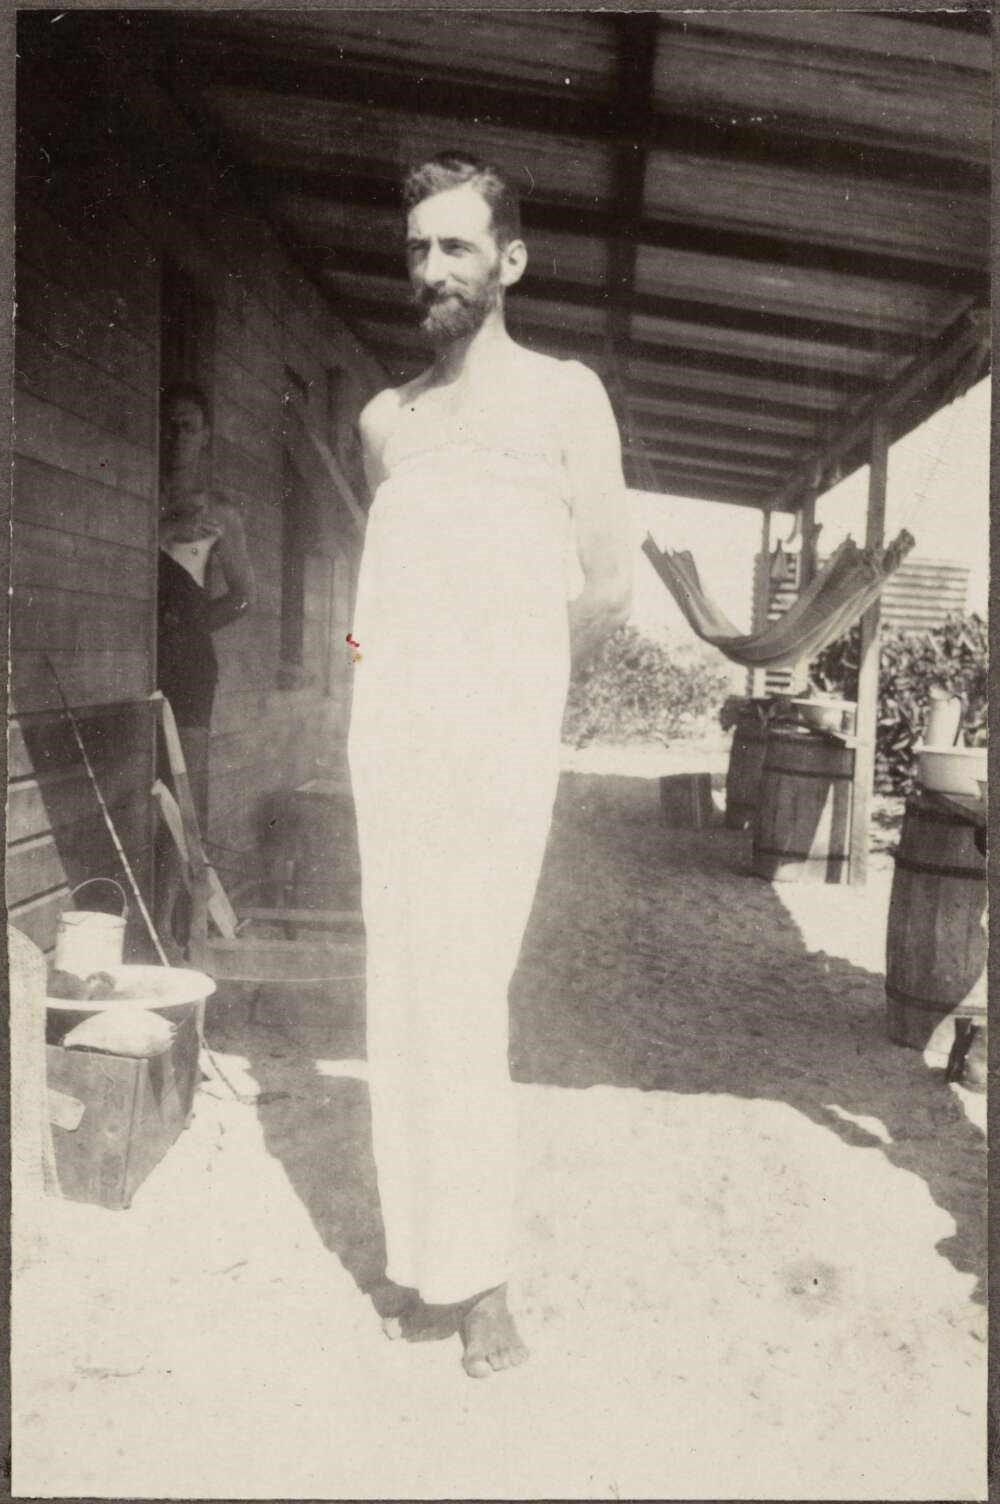 Unknown photographer, Geoffrey Tandy solves the heat problem with the aid of a bed sheet, 1928, gelatin silver photograph, in Presentation album to Mattie Yonge by the Australian Museum team who joined the Great Barrier Reef Expedition, Low Islands, Qu